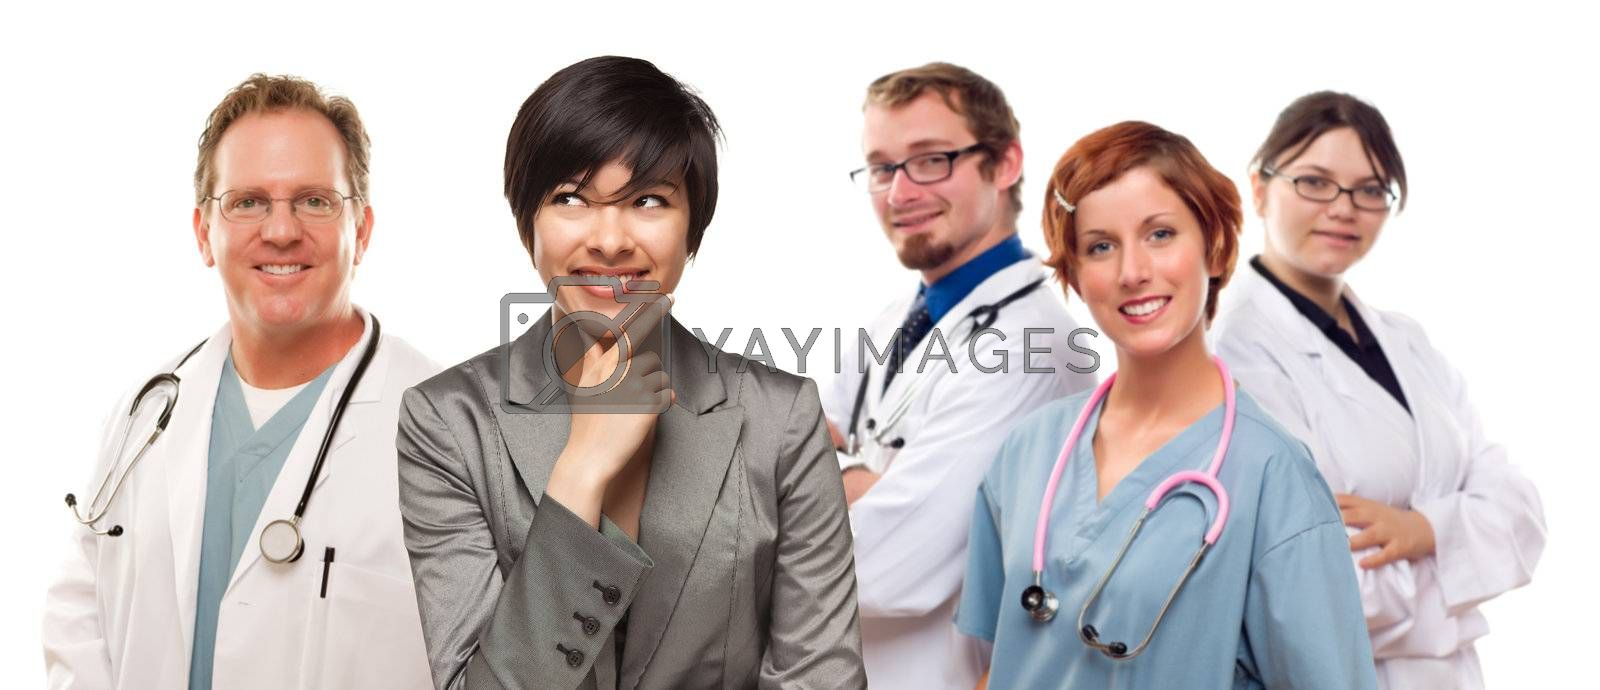 Young Mixed Race Woman with Doctors and Nurses Behind Isolated on a White Background.